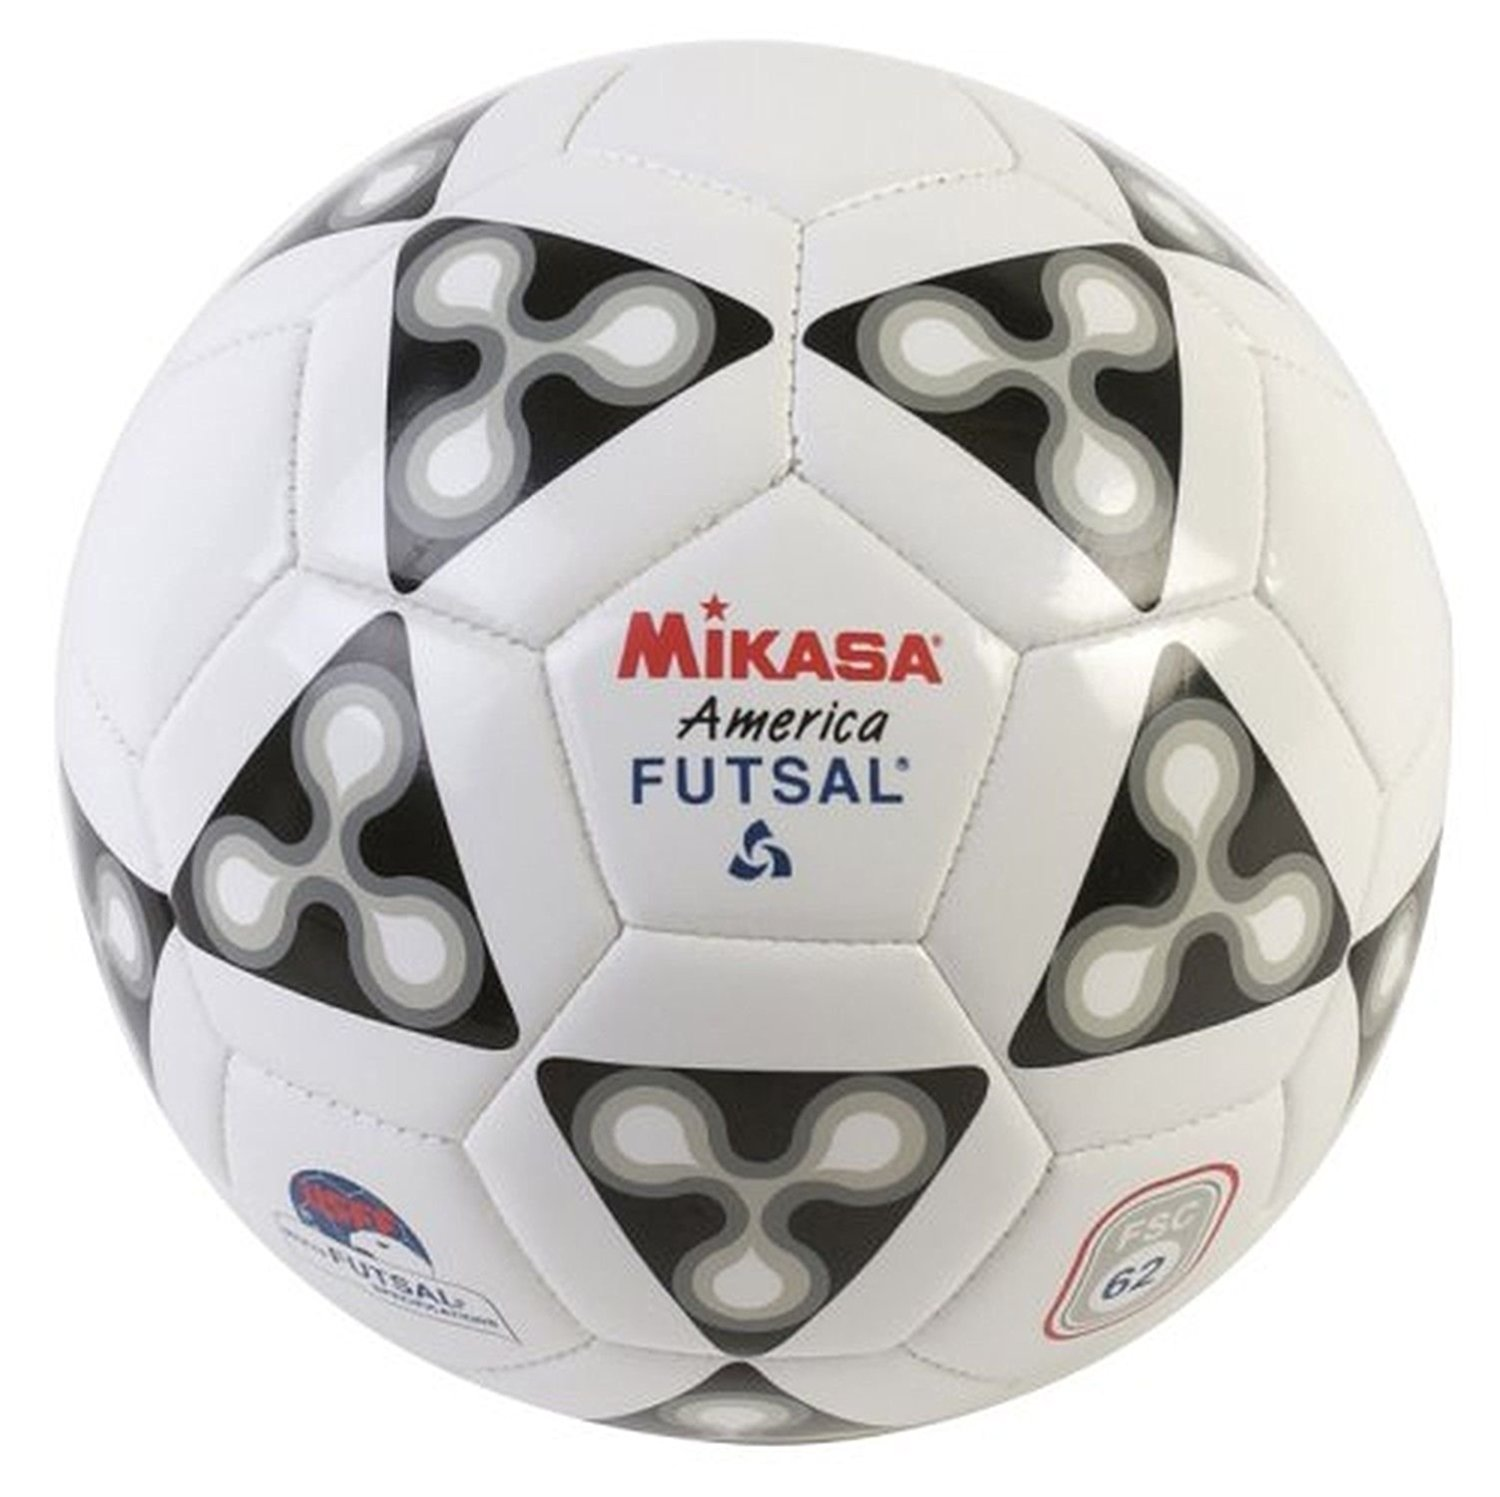 Mikasa America Futsal Ball; Low Bounce Soccer Ball-size 4;black-white New Fsc62